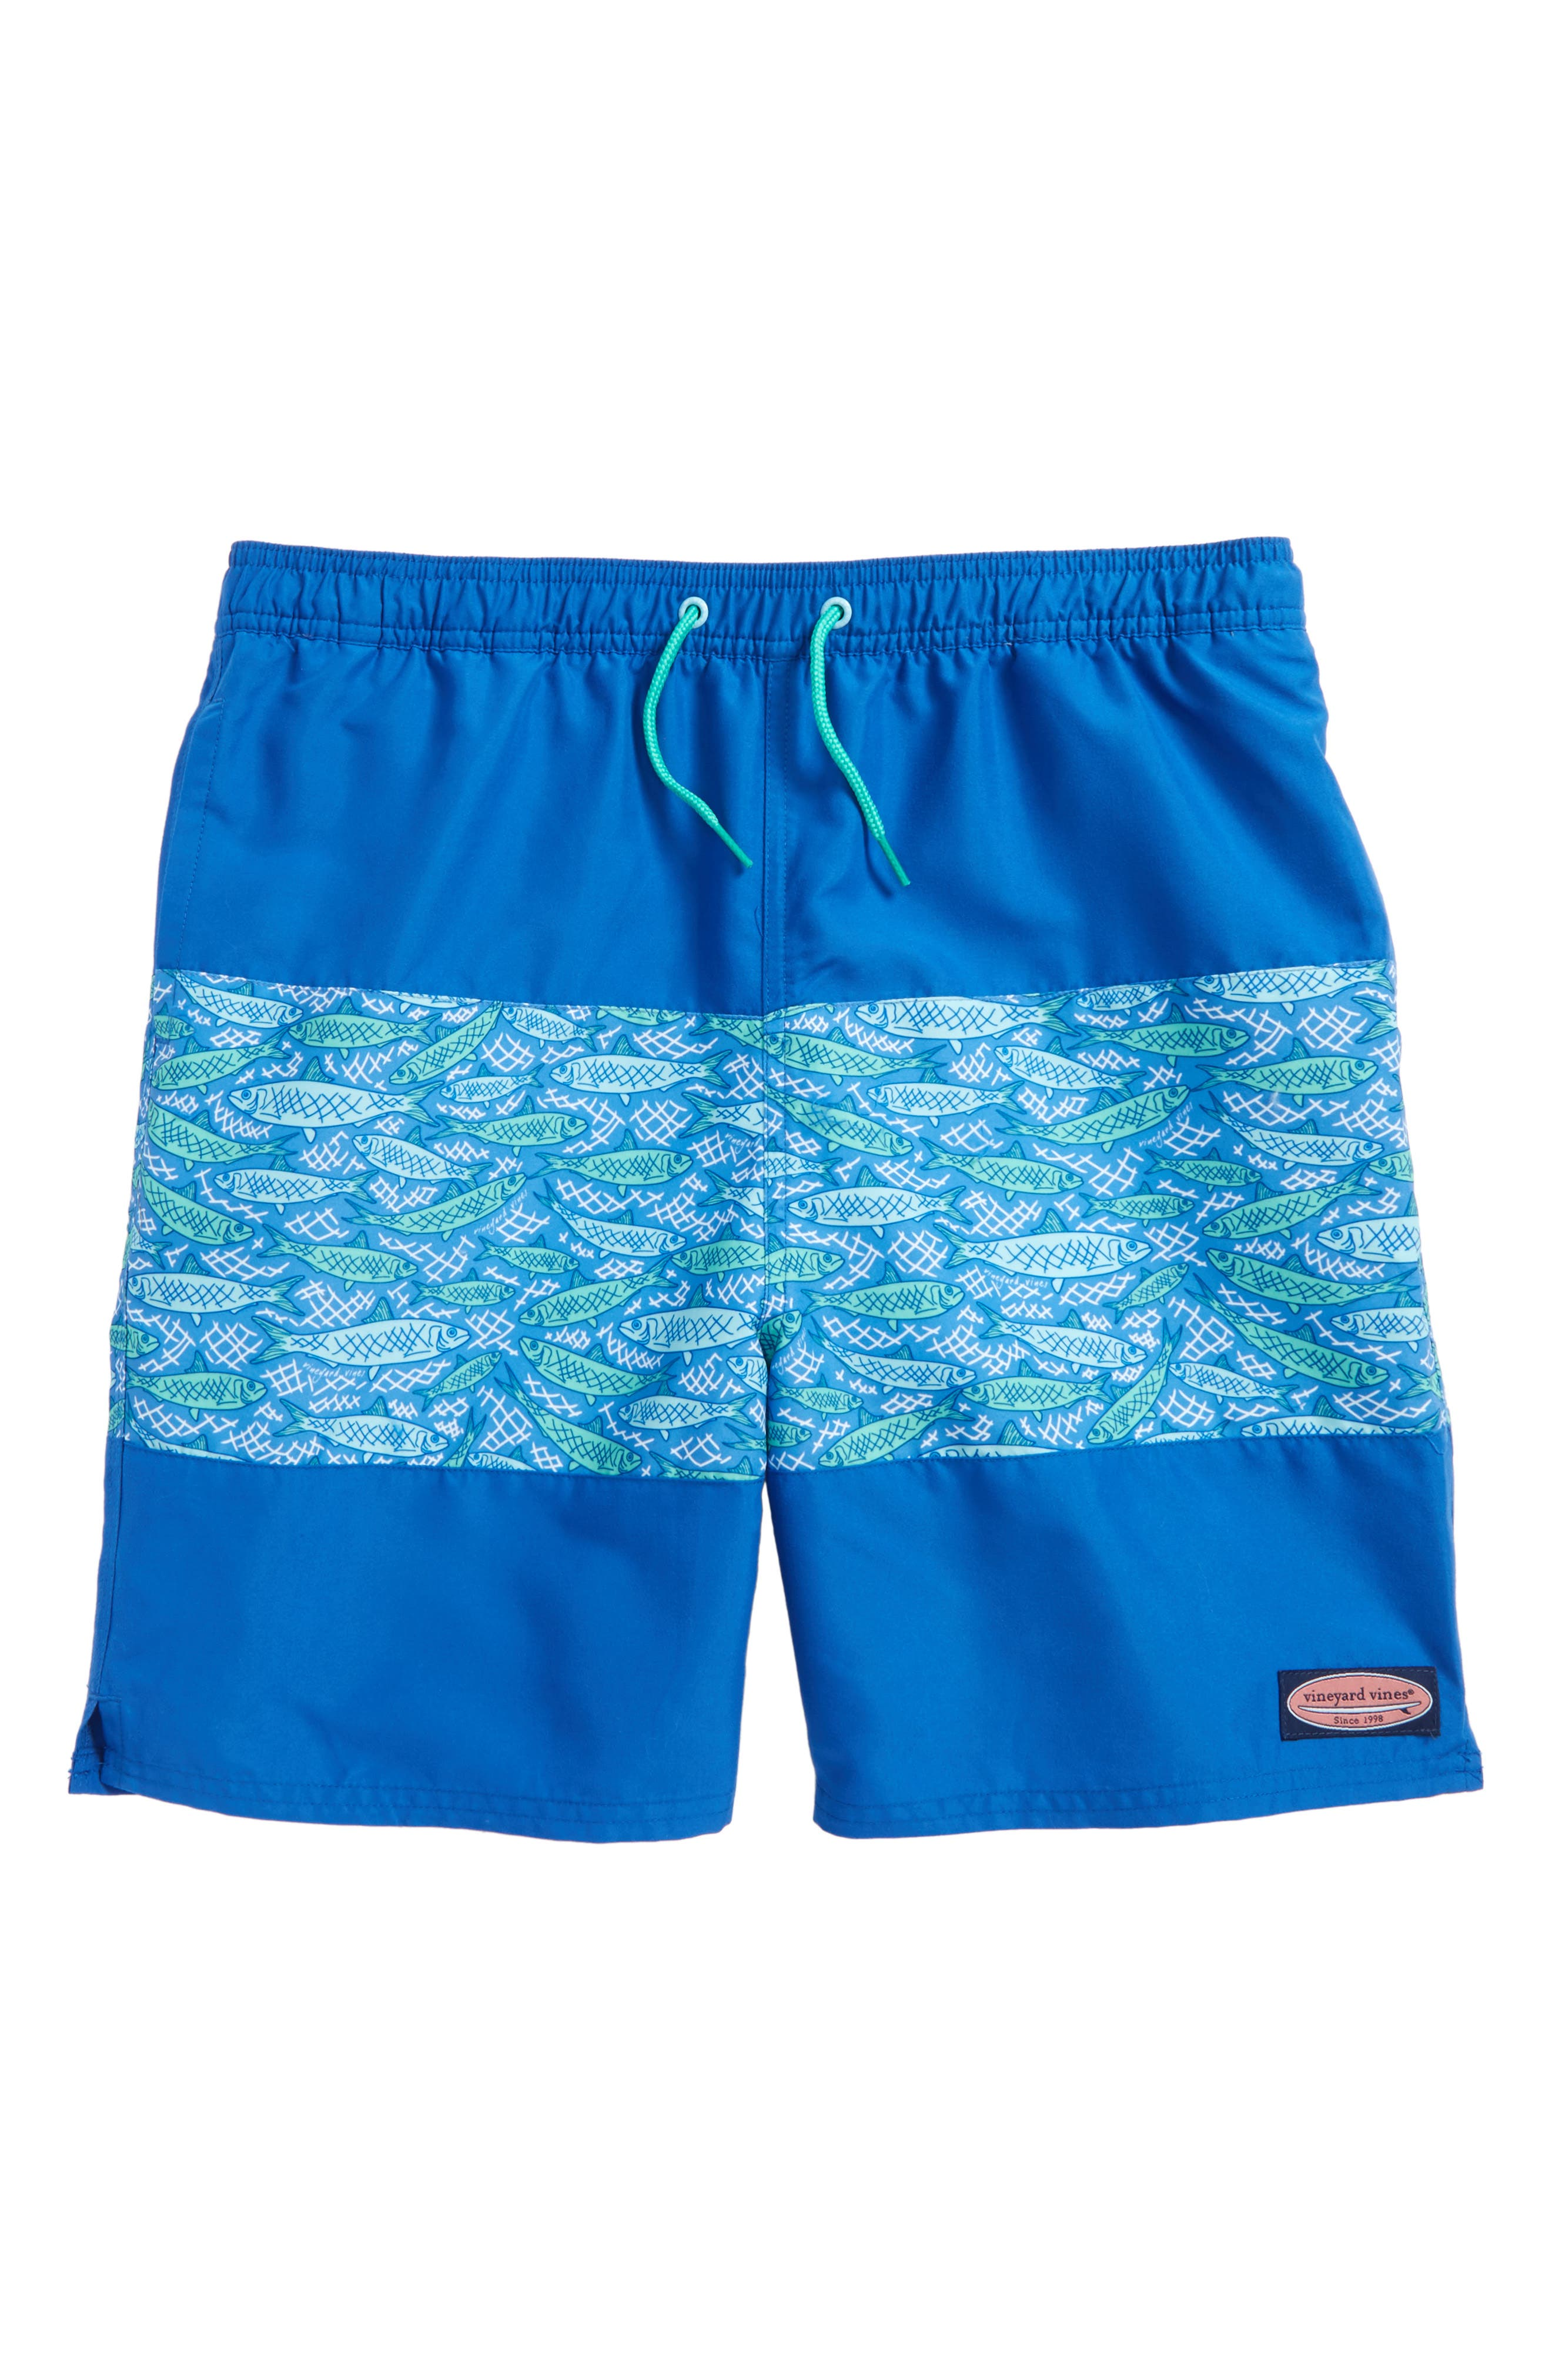 Fish Scale Chappy Swim Trunks,                             Main thumbnail 1, color,